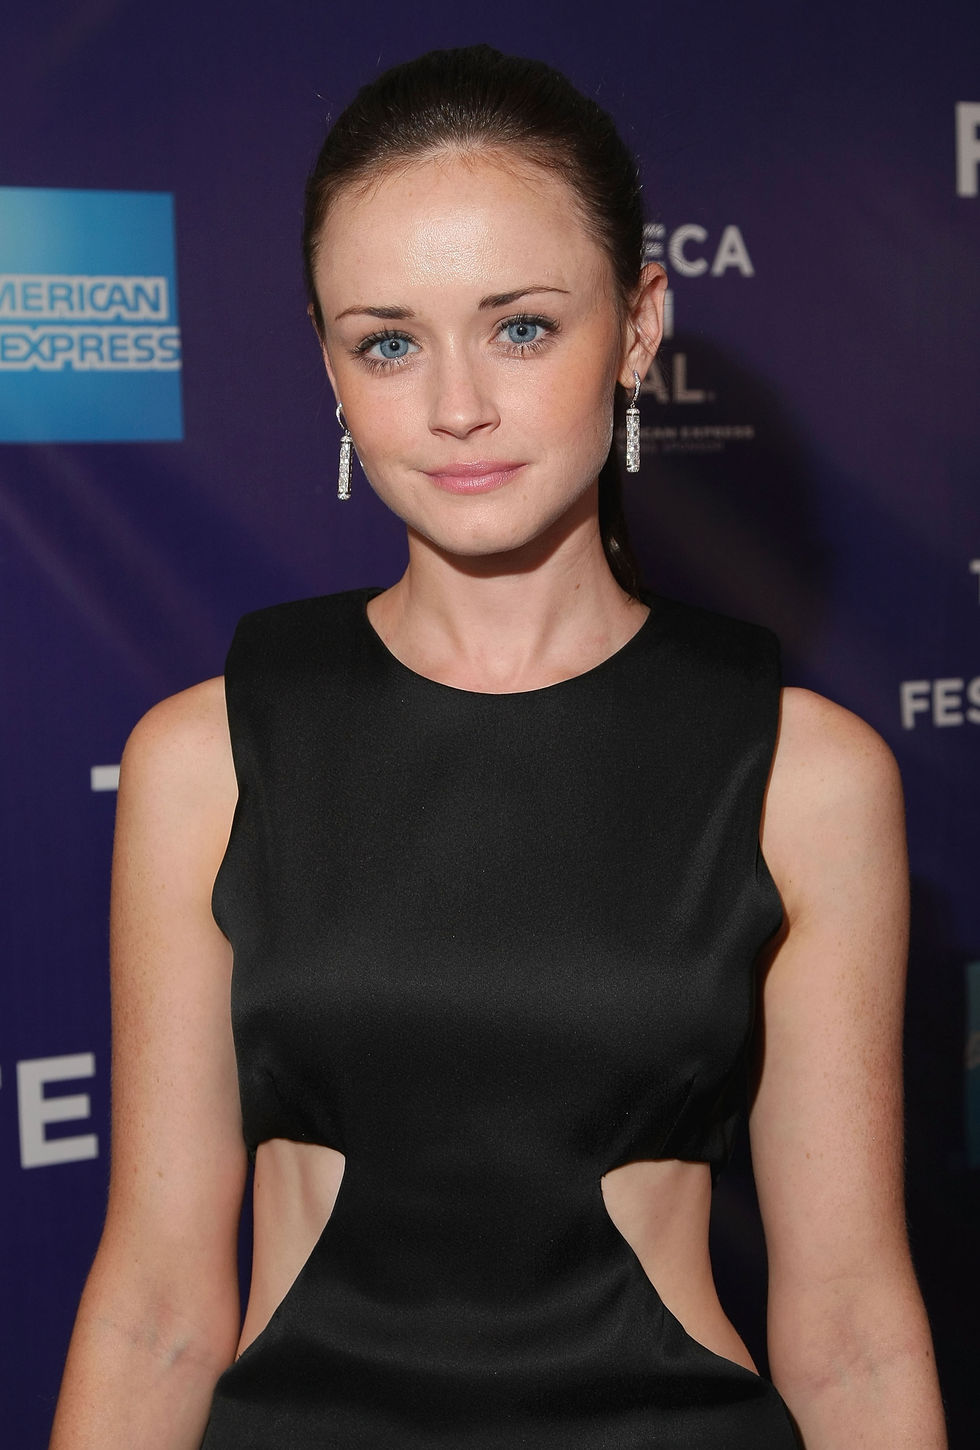 alexis-bledel-the-good-guy-premiere-in-new-york-01